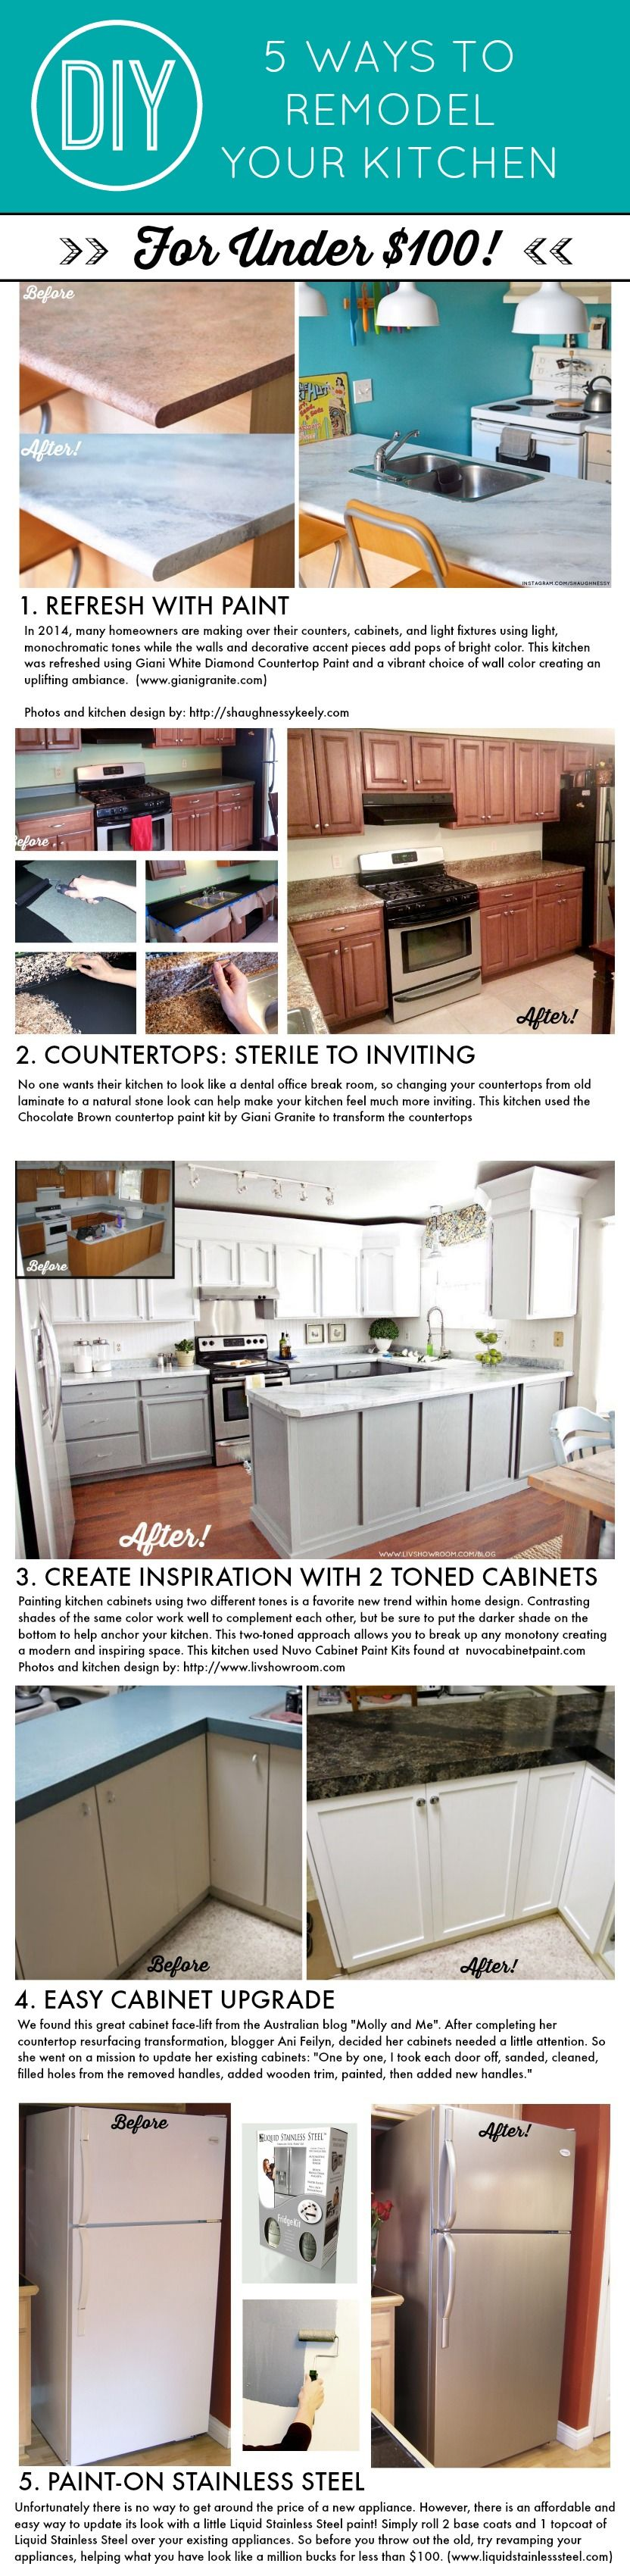 5 Ways To Remodel Your Kitchen For Under $100! | Budgeting, Kitchens ...